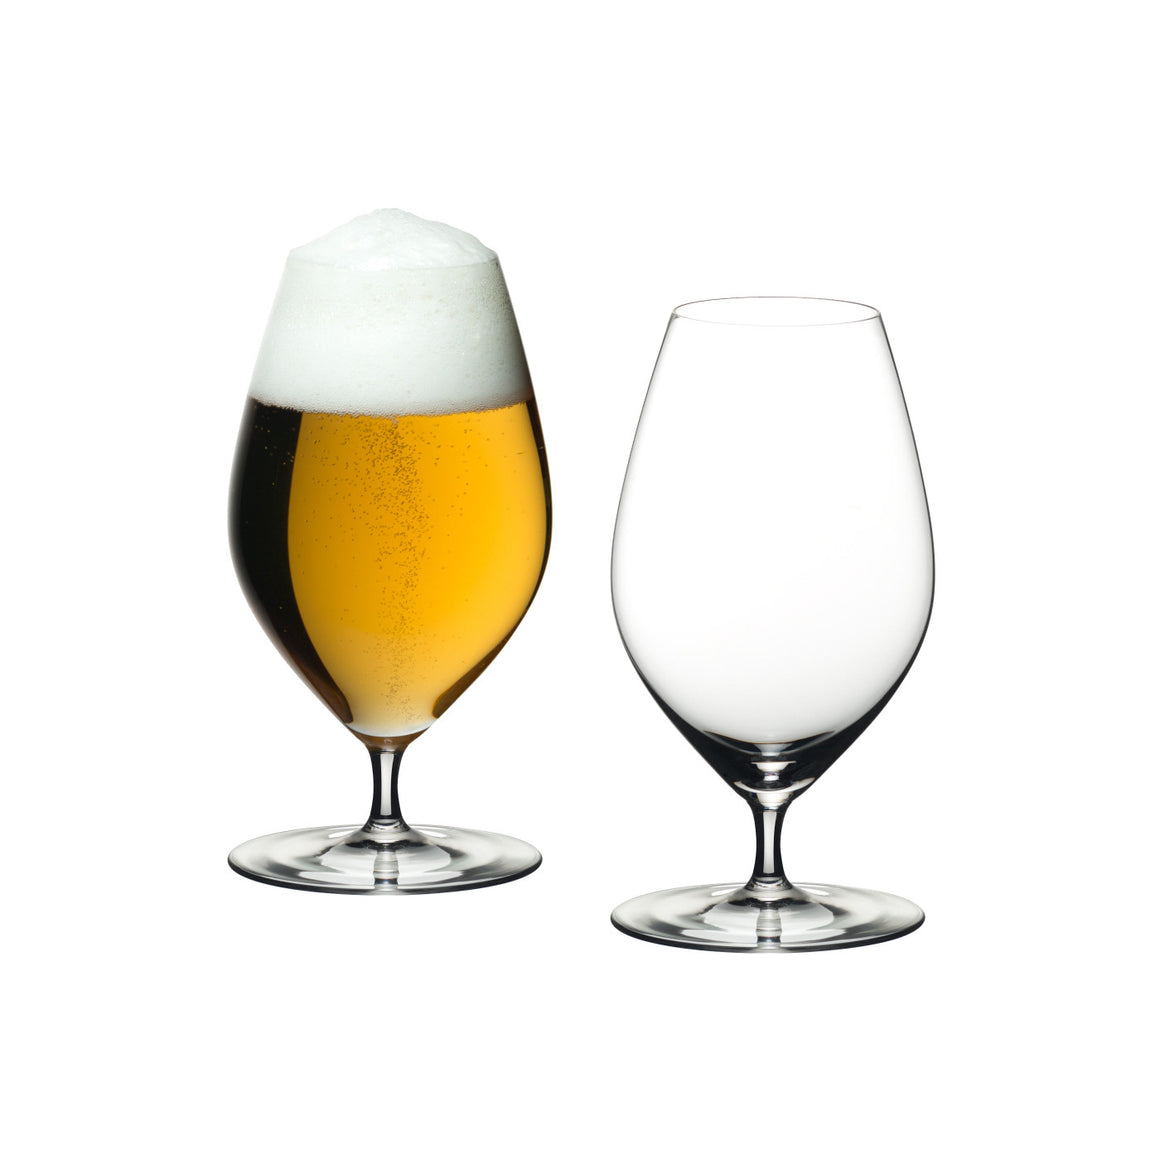 Riedel Veritas Beer Glass 0.44L (Pair)